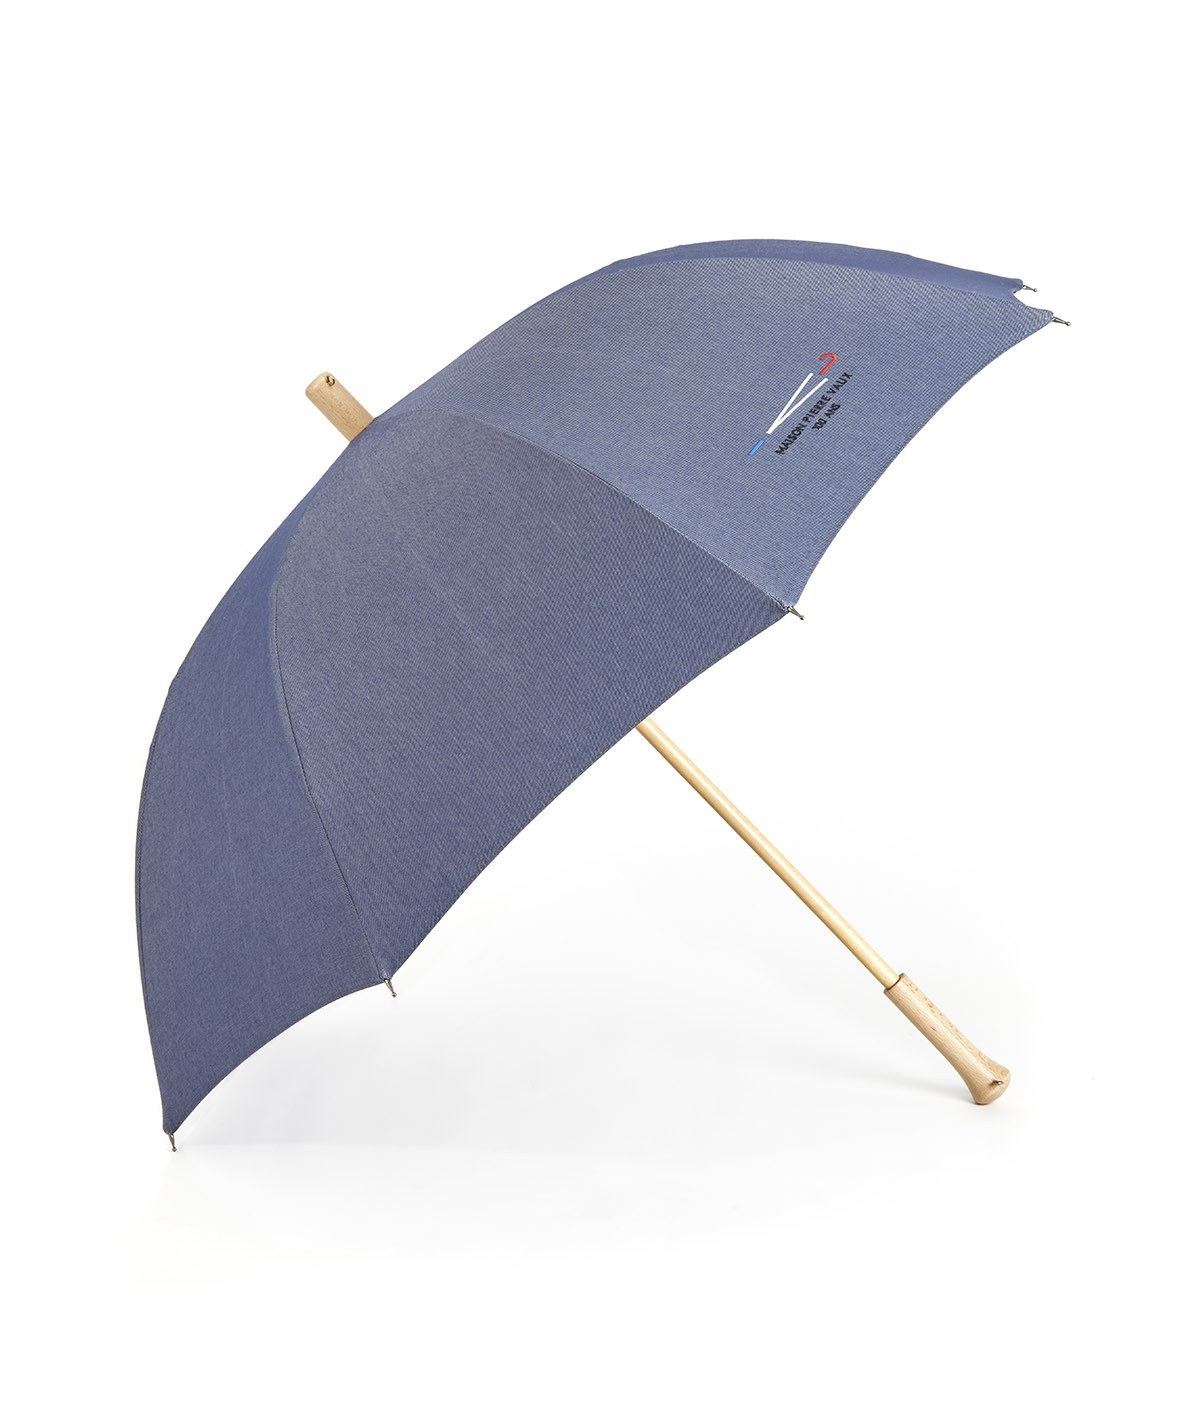 "→ Parapluie ""Denim 100 ans"" - Bandoulière - Made in France par Maison Pierre Vaux"